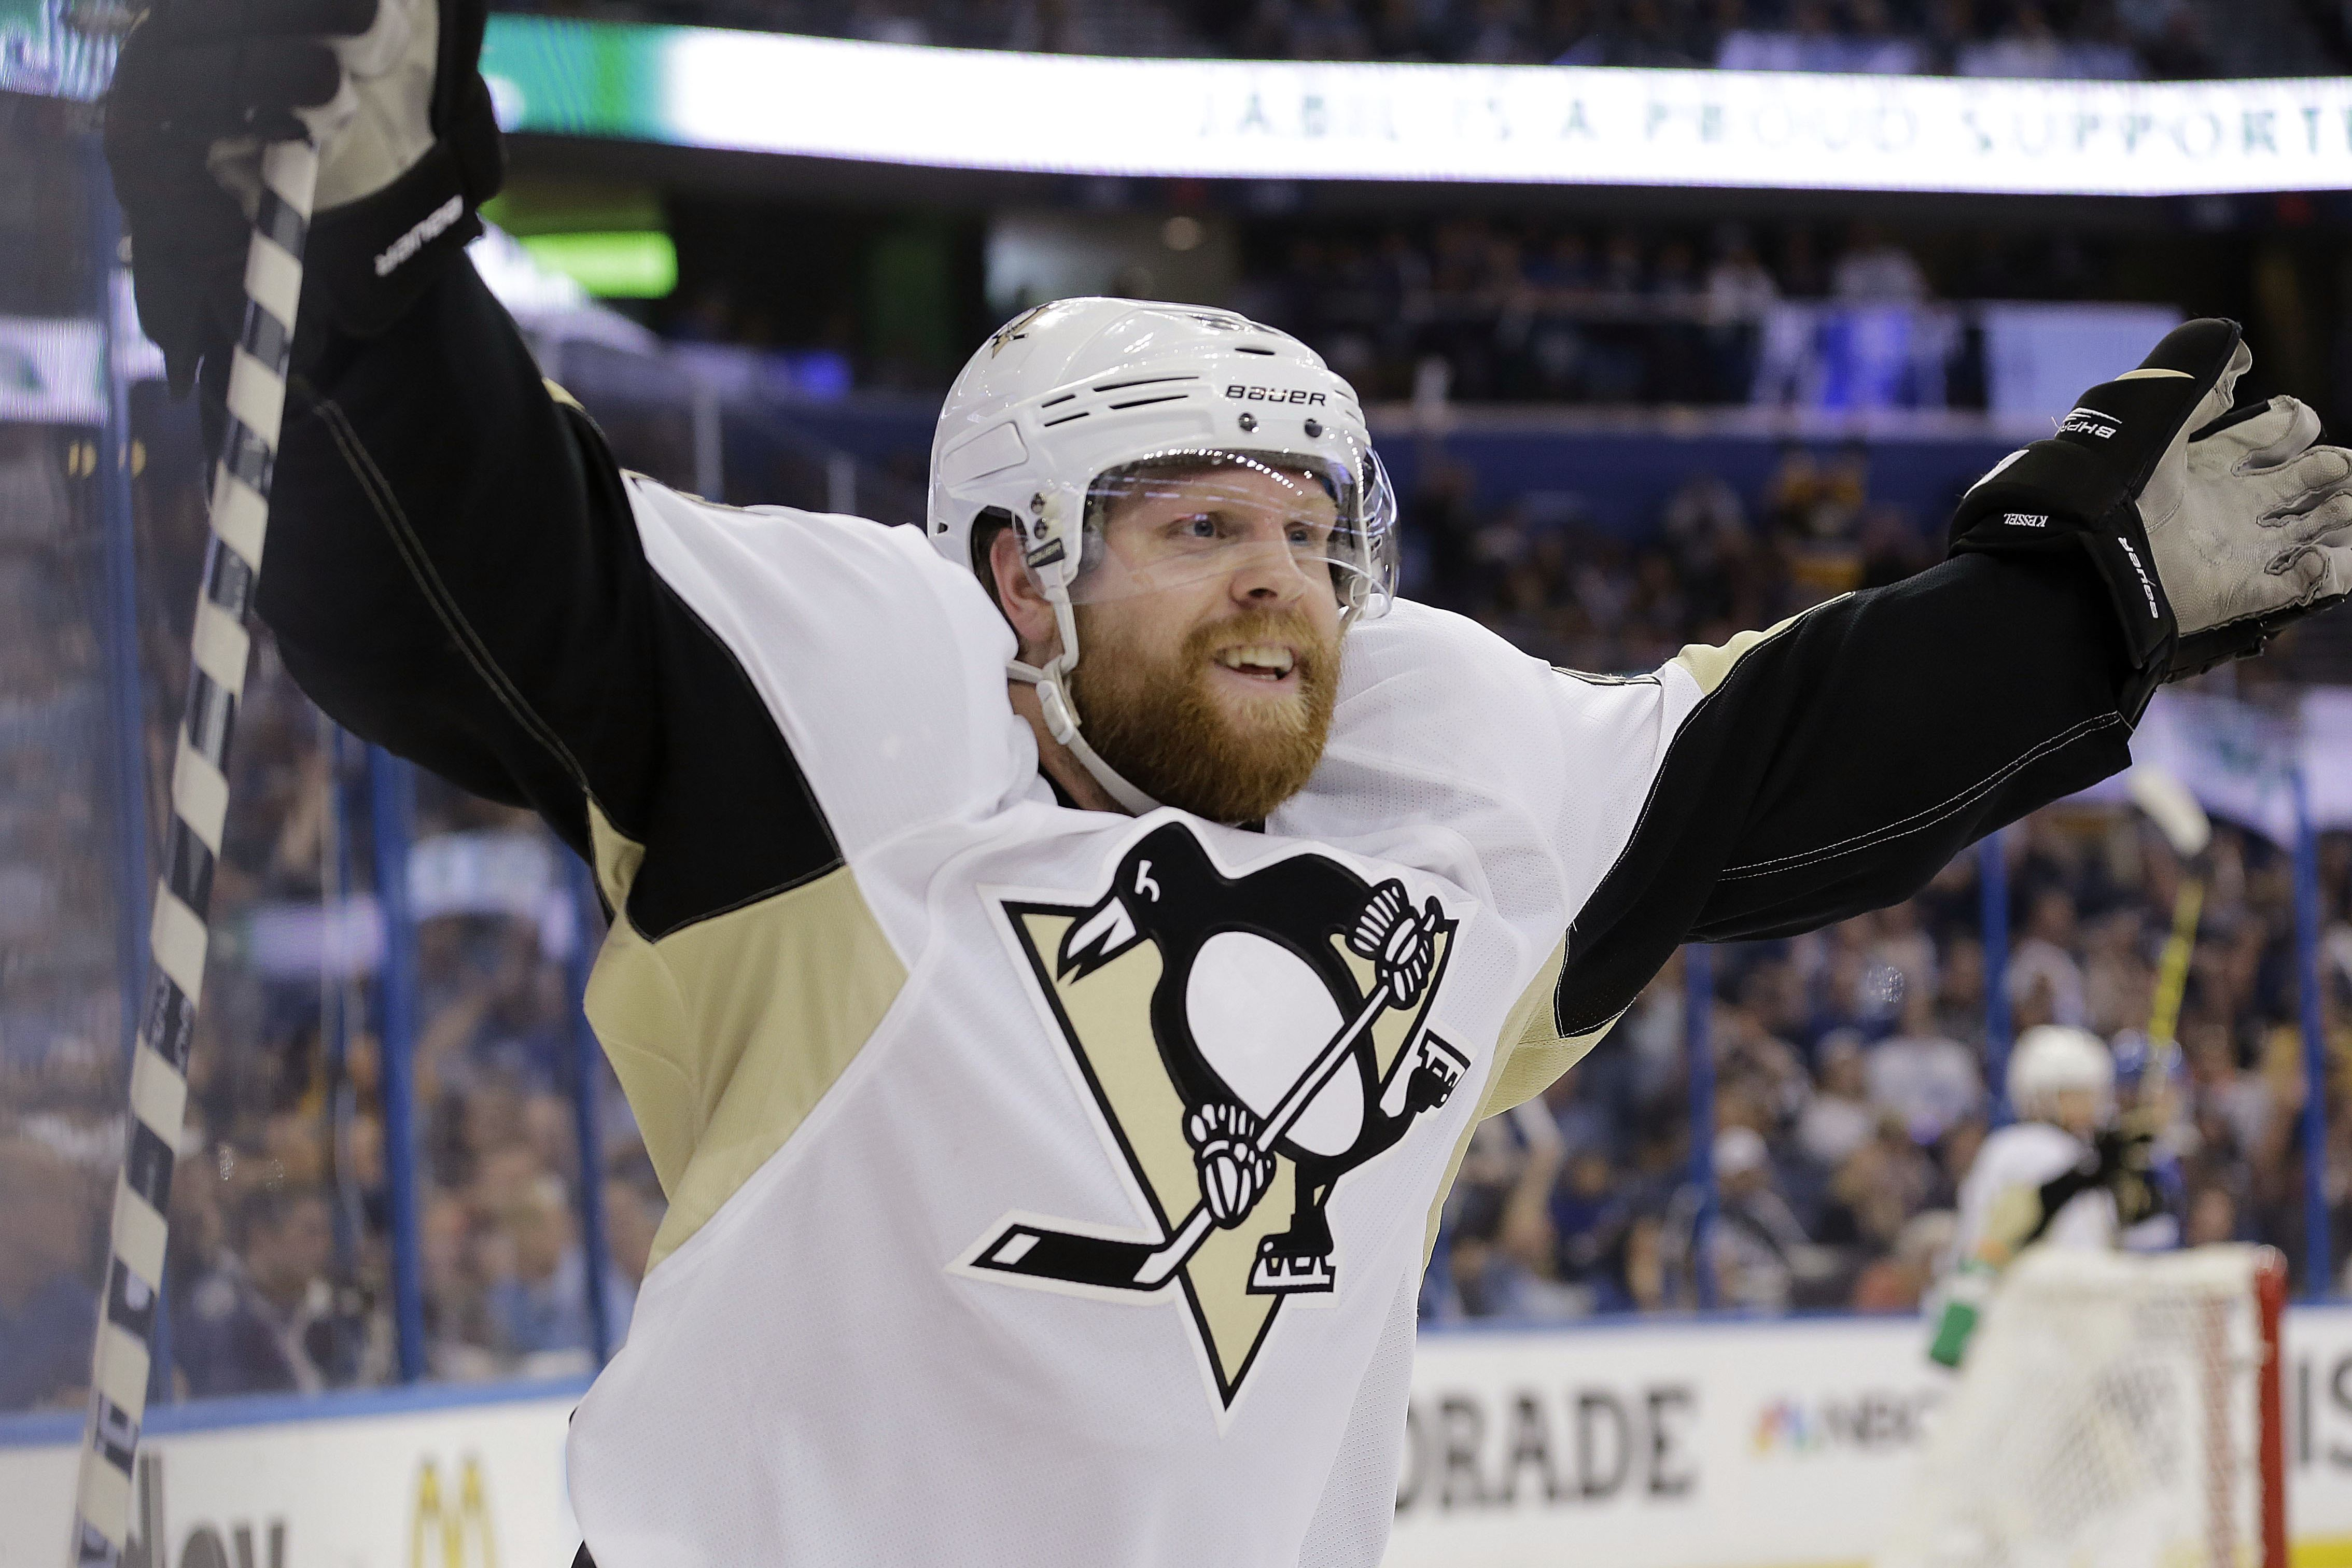 With NHL free-agent market set to open, don't expect anything like Kessel deal